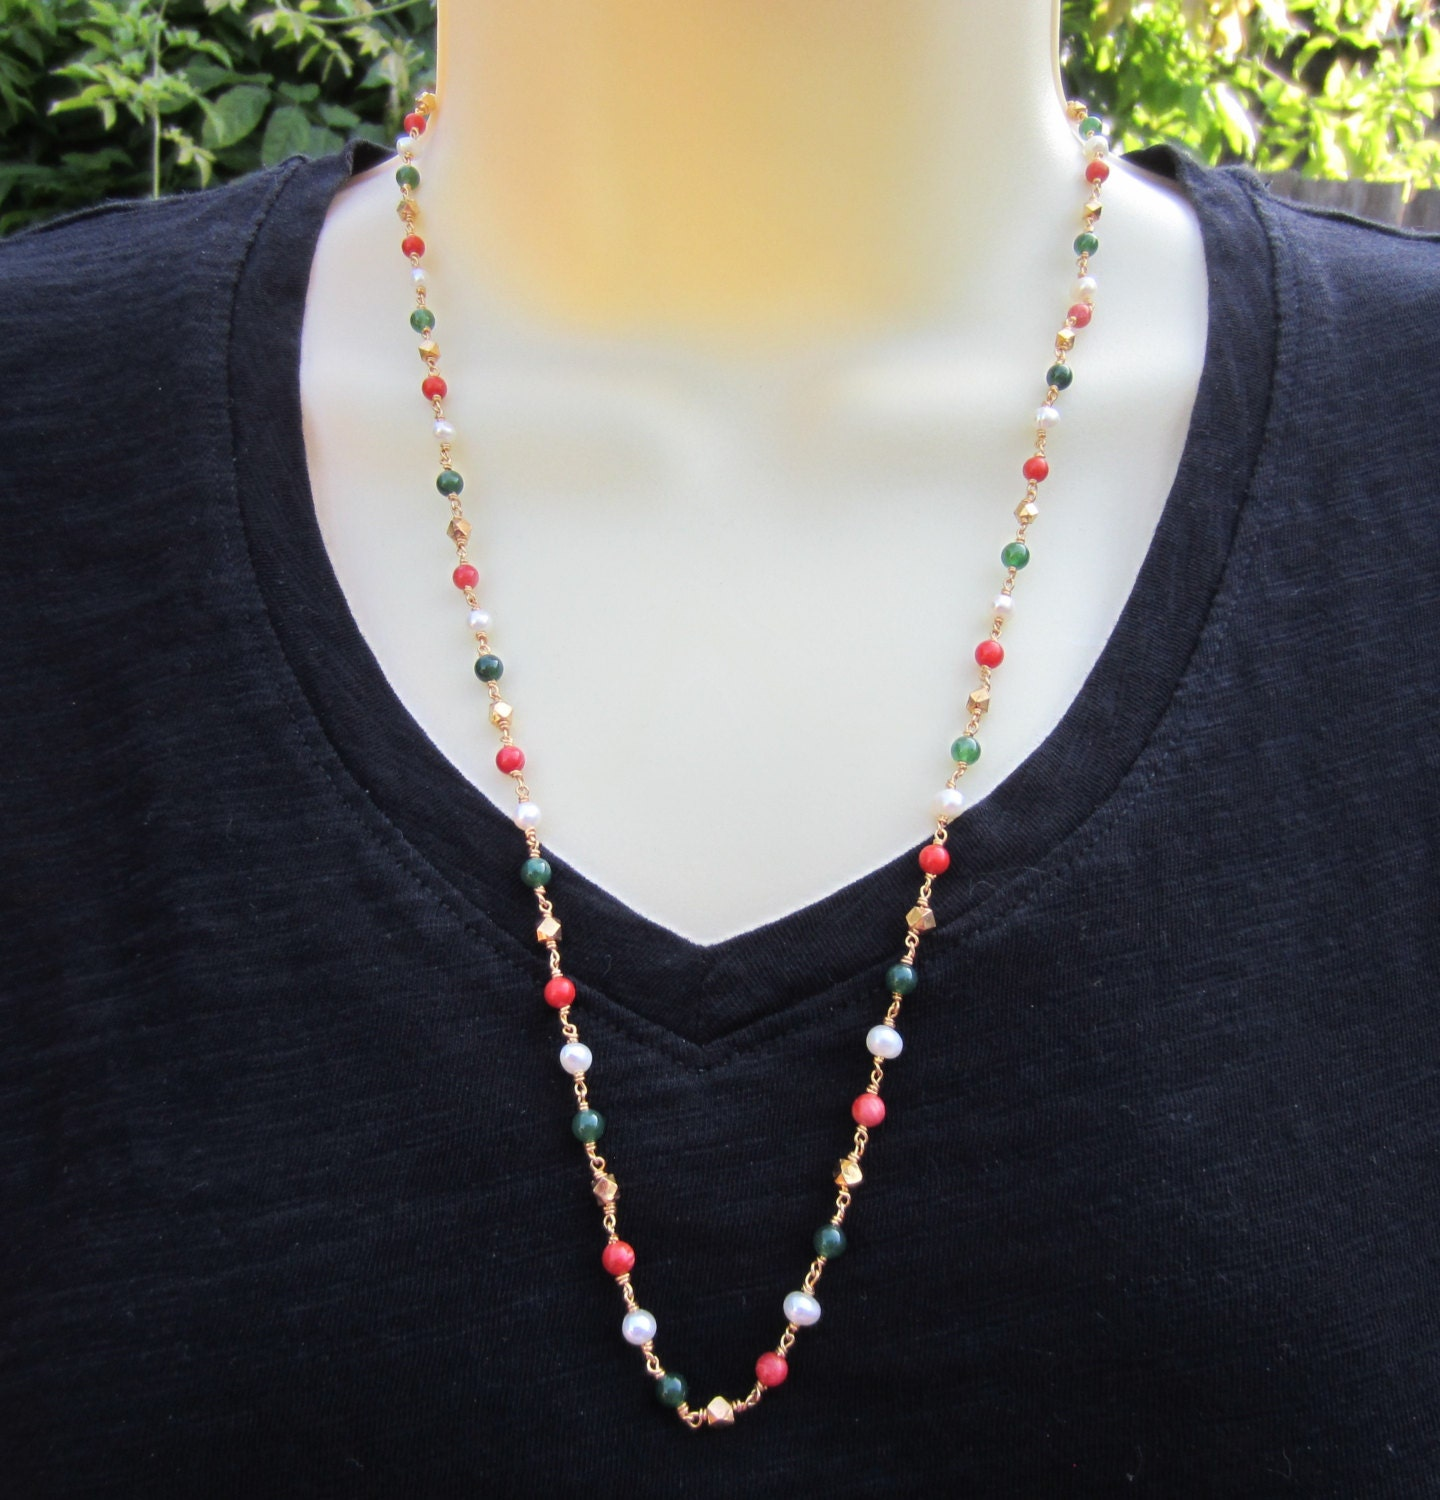 necklace jan kazuri smith by etsy jade christine luxury artisan jewelry olive sun photography beads